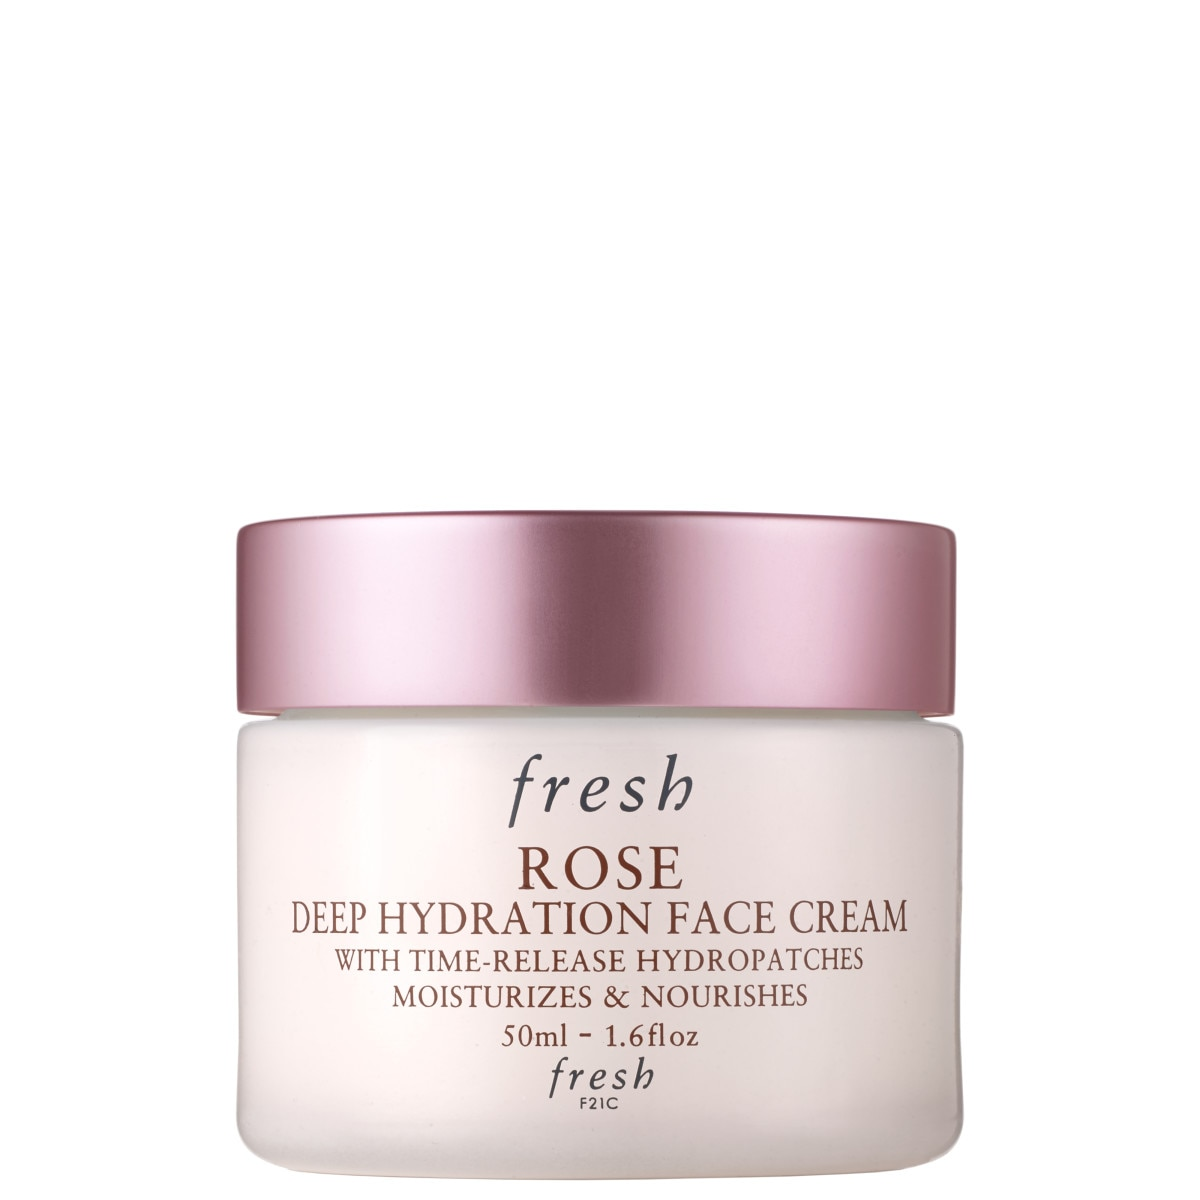 ROSE DEEP HYDRATION FACE CREAM